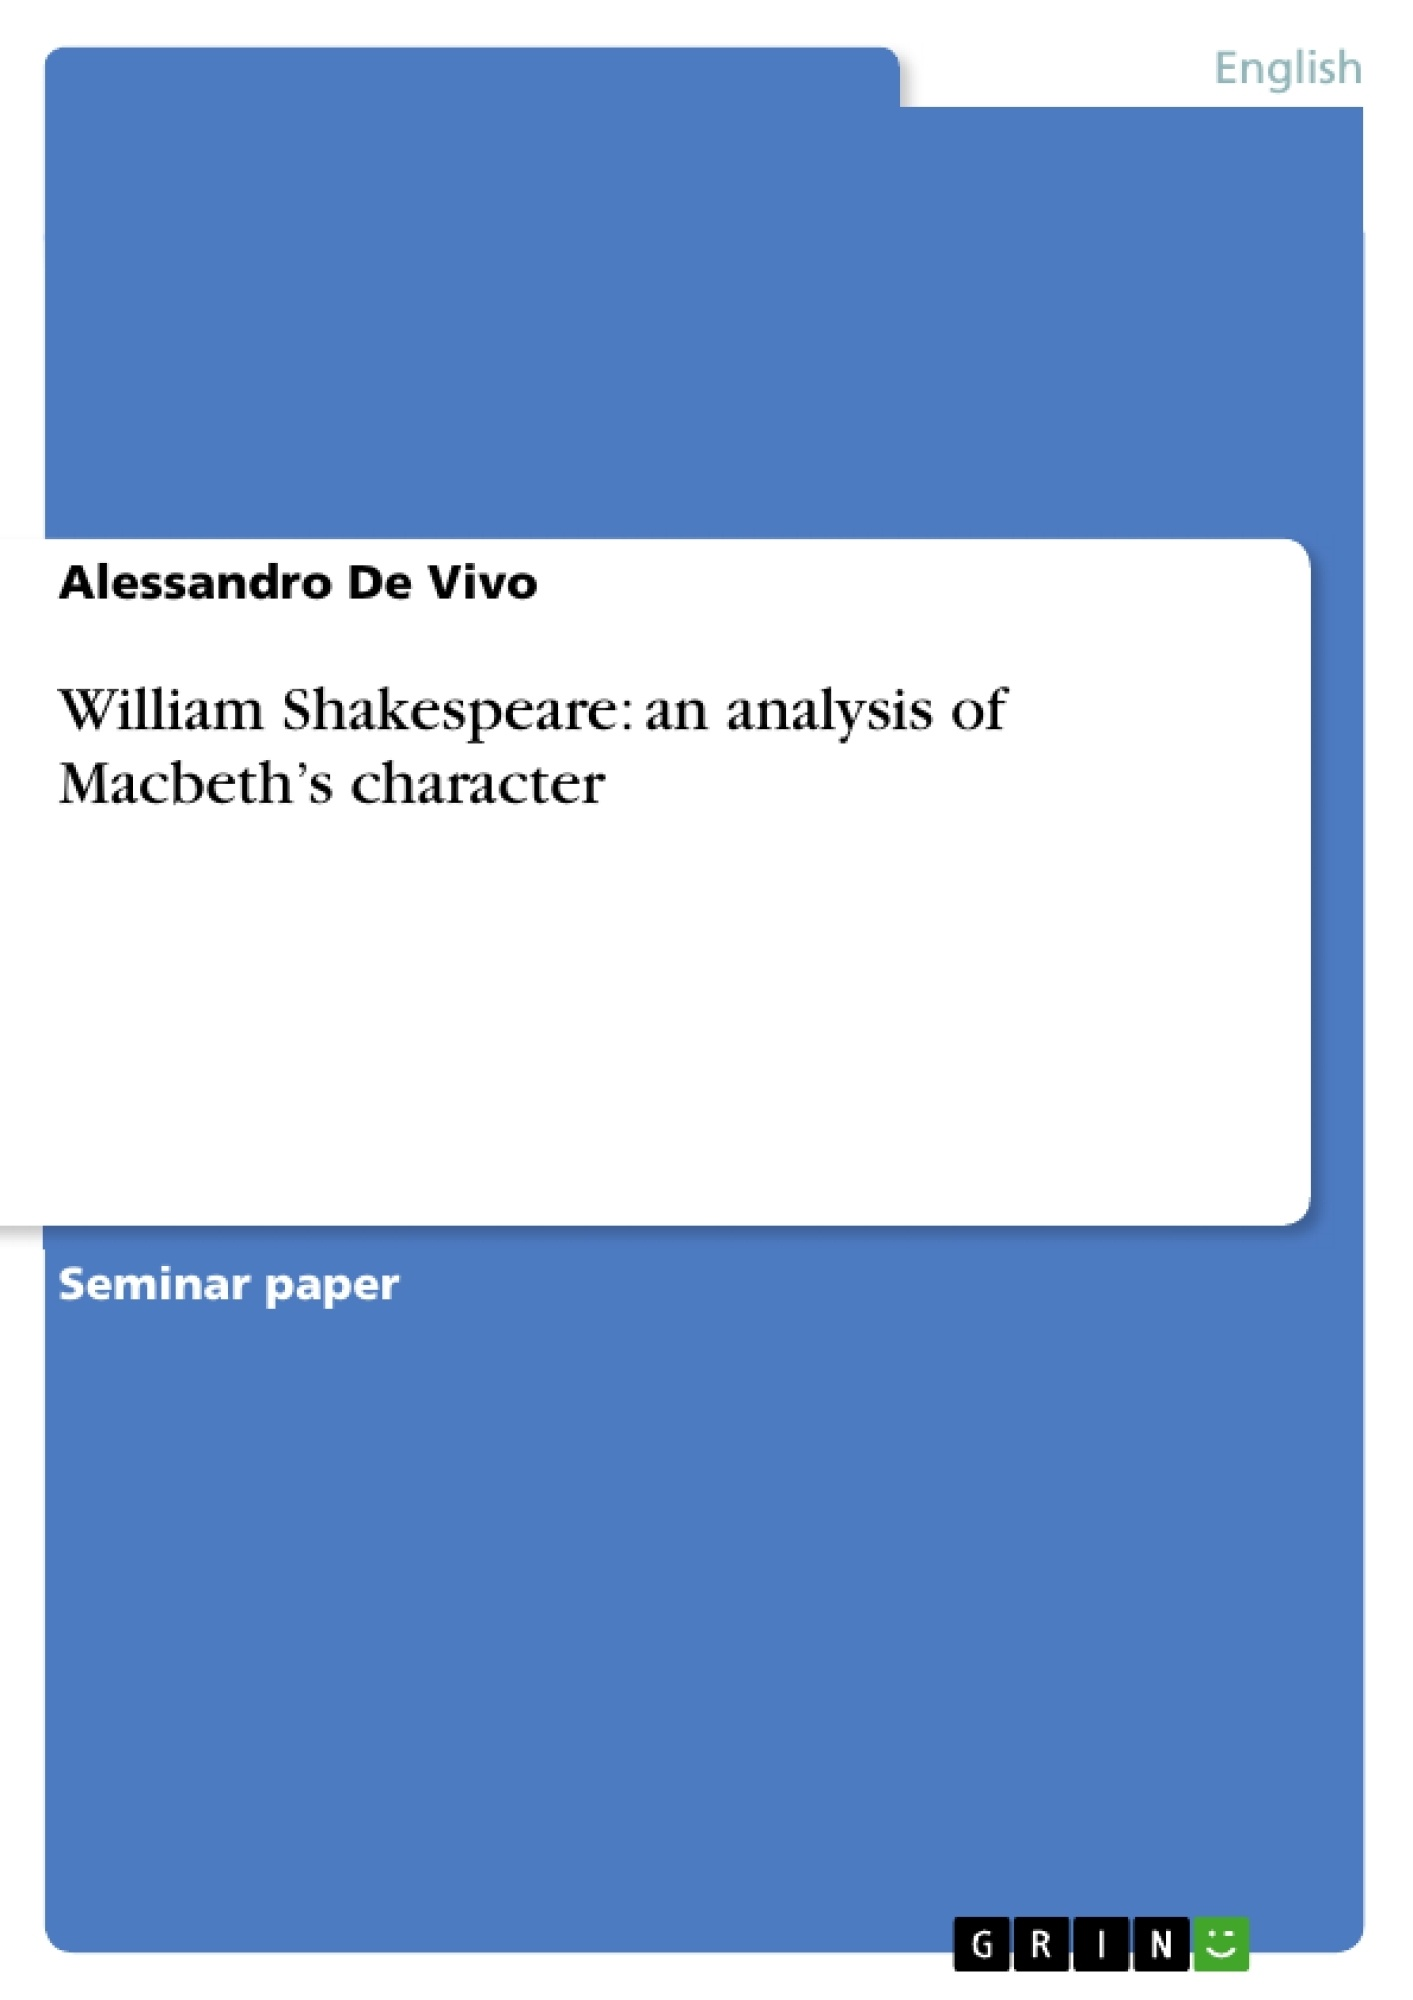 Title: William Shakespeare: an analysis of Macbeth's character